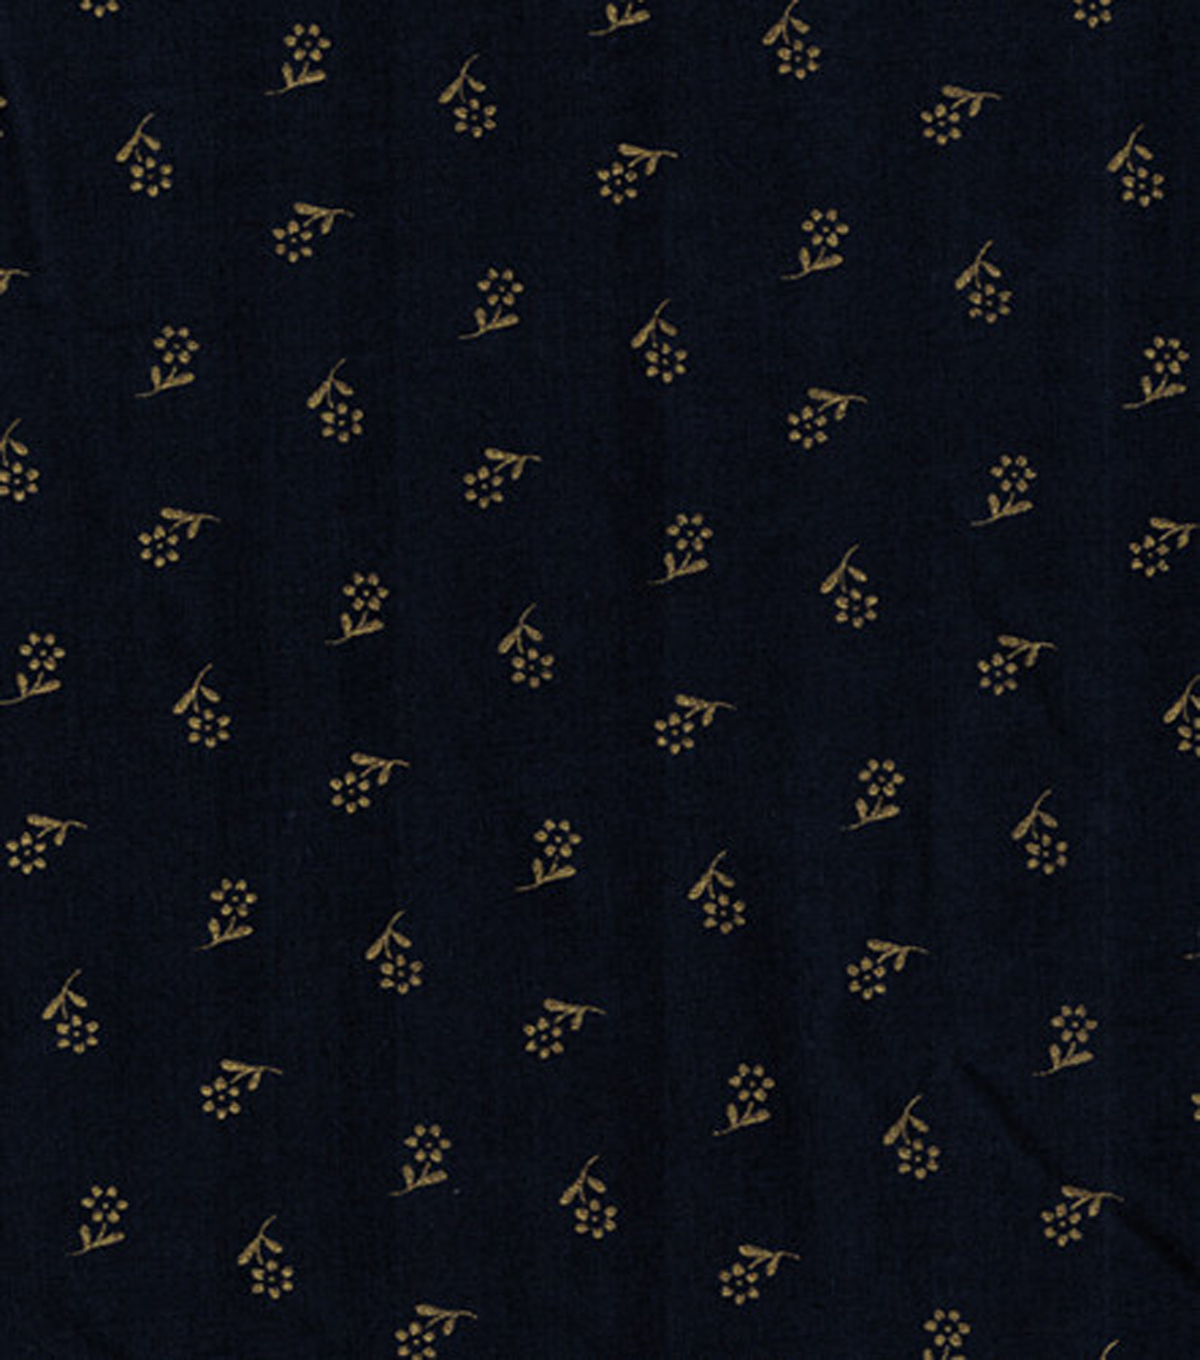 Keepsake Calico™ Cotton Fabric-Flowers On Navy With Gold Metallic